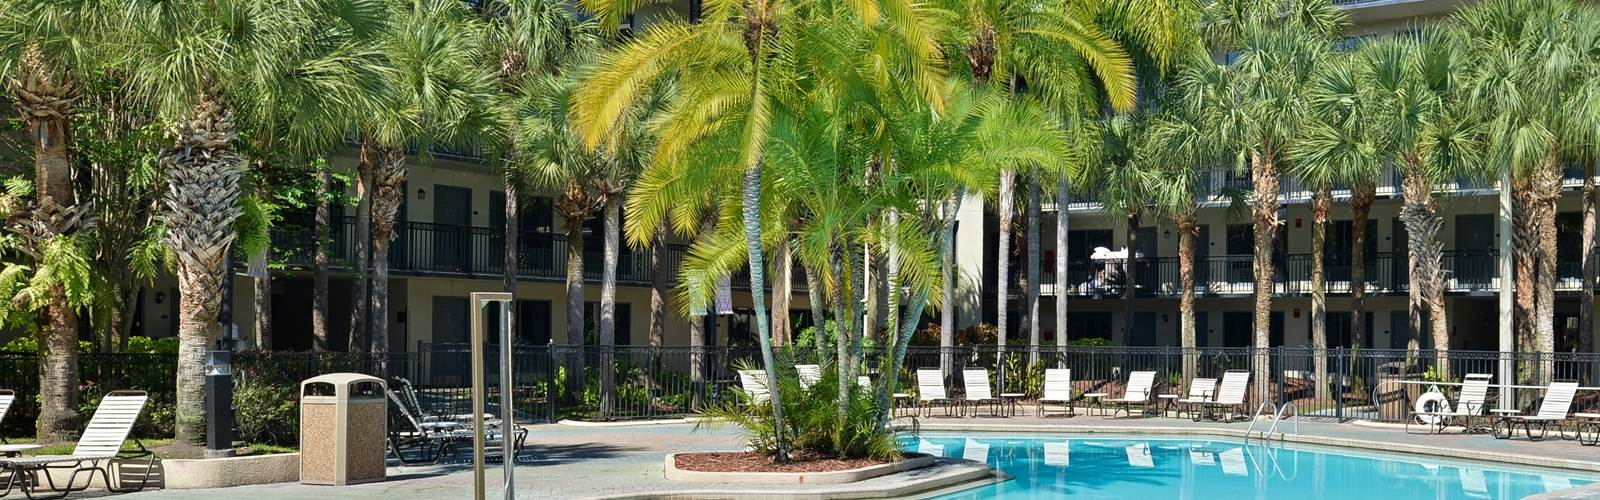 Orlando Hotel Specials and Vacation Packages in Kissimmee